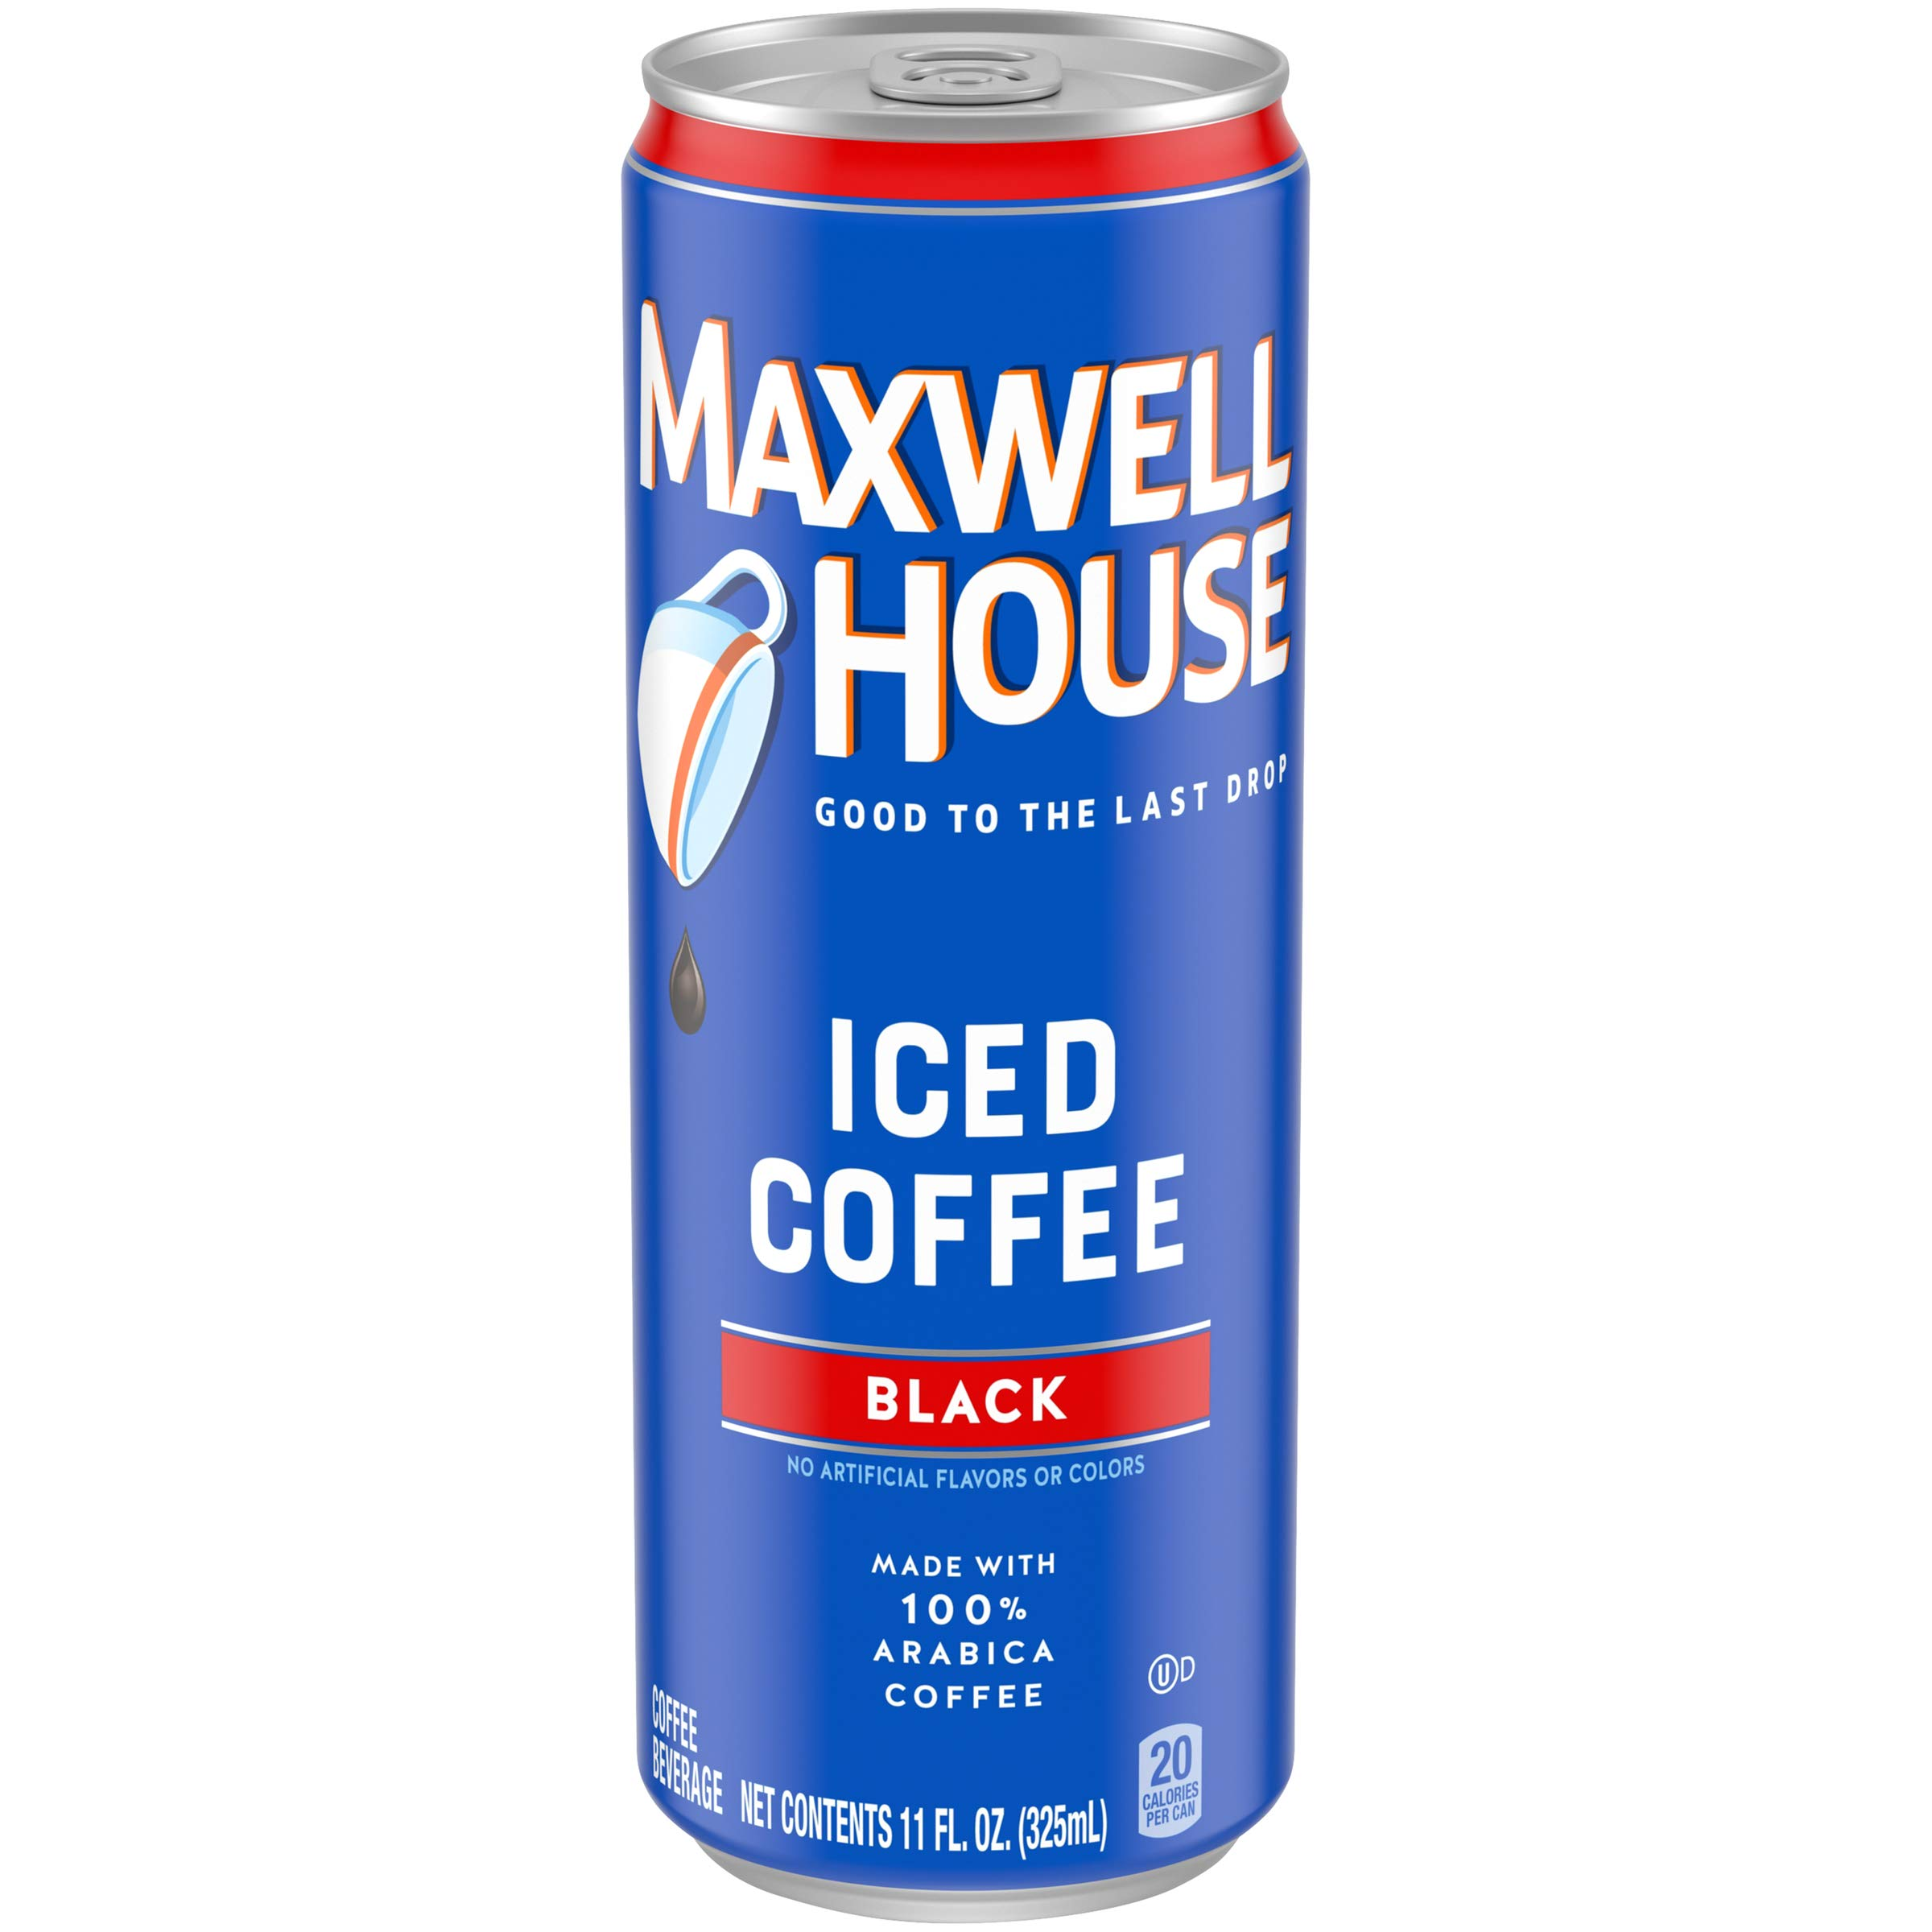 Maxwell House Iced Coffee, Black, 11 Fl. Oz. (Pack Of 12)